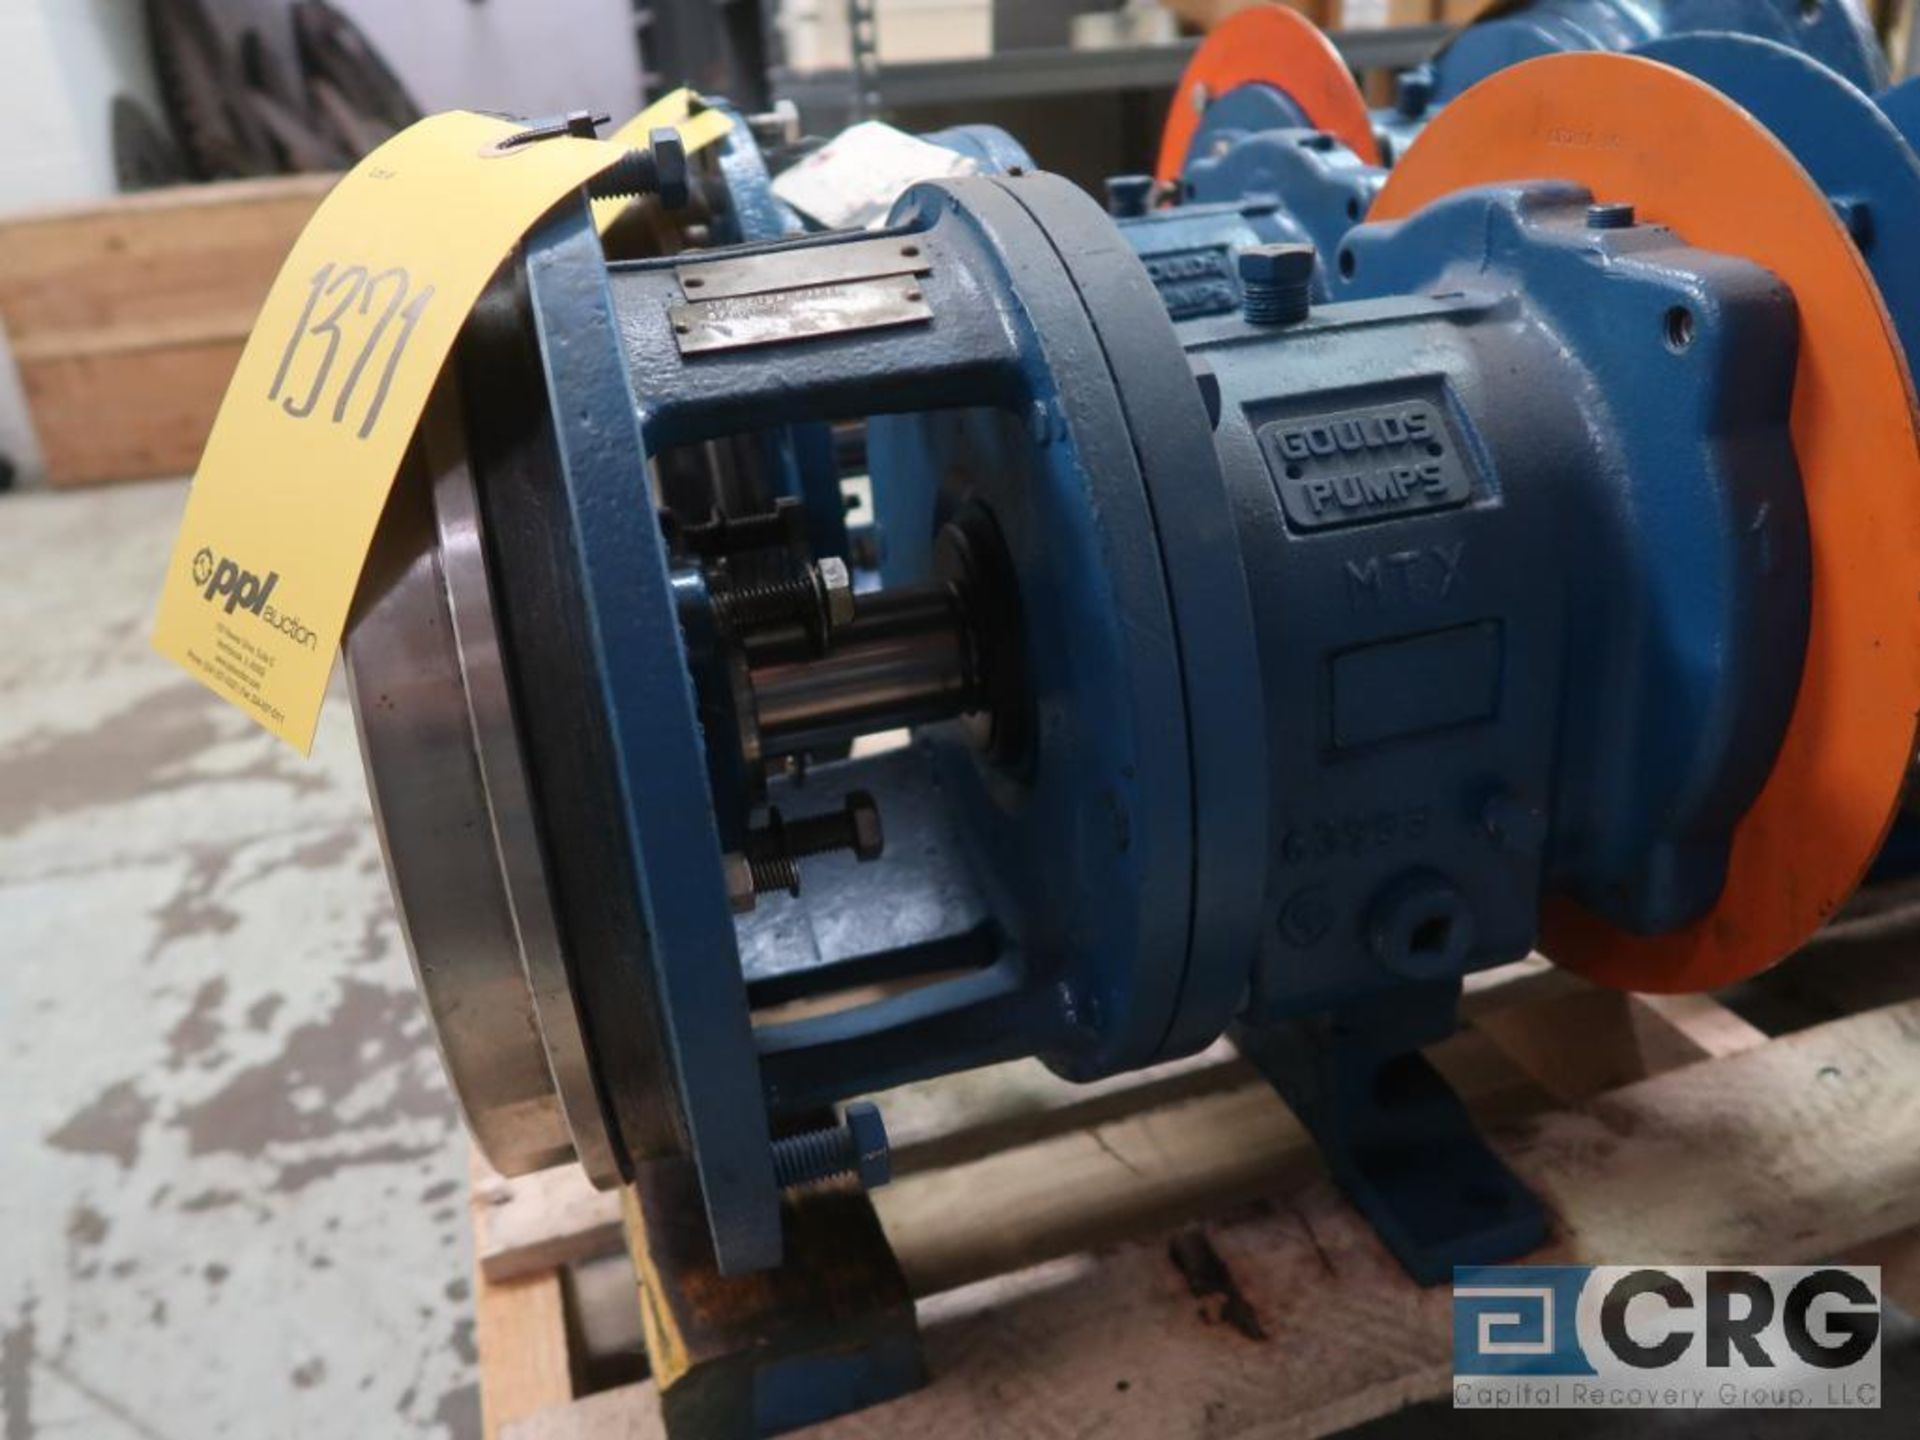 Lot of (2) Goulds 3190 pumps, (1) 10 in. MTX, and (1) MXT (Basement Stores) - Image 2 of 2